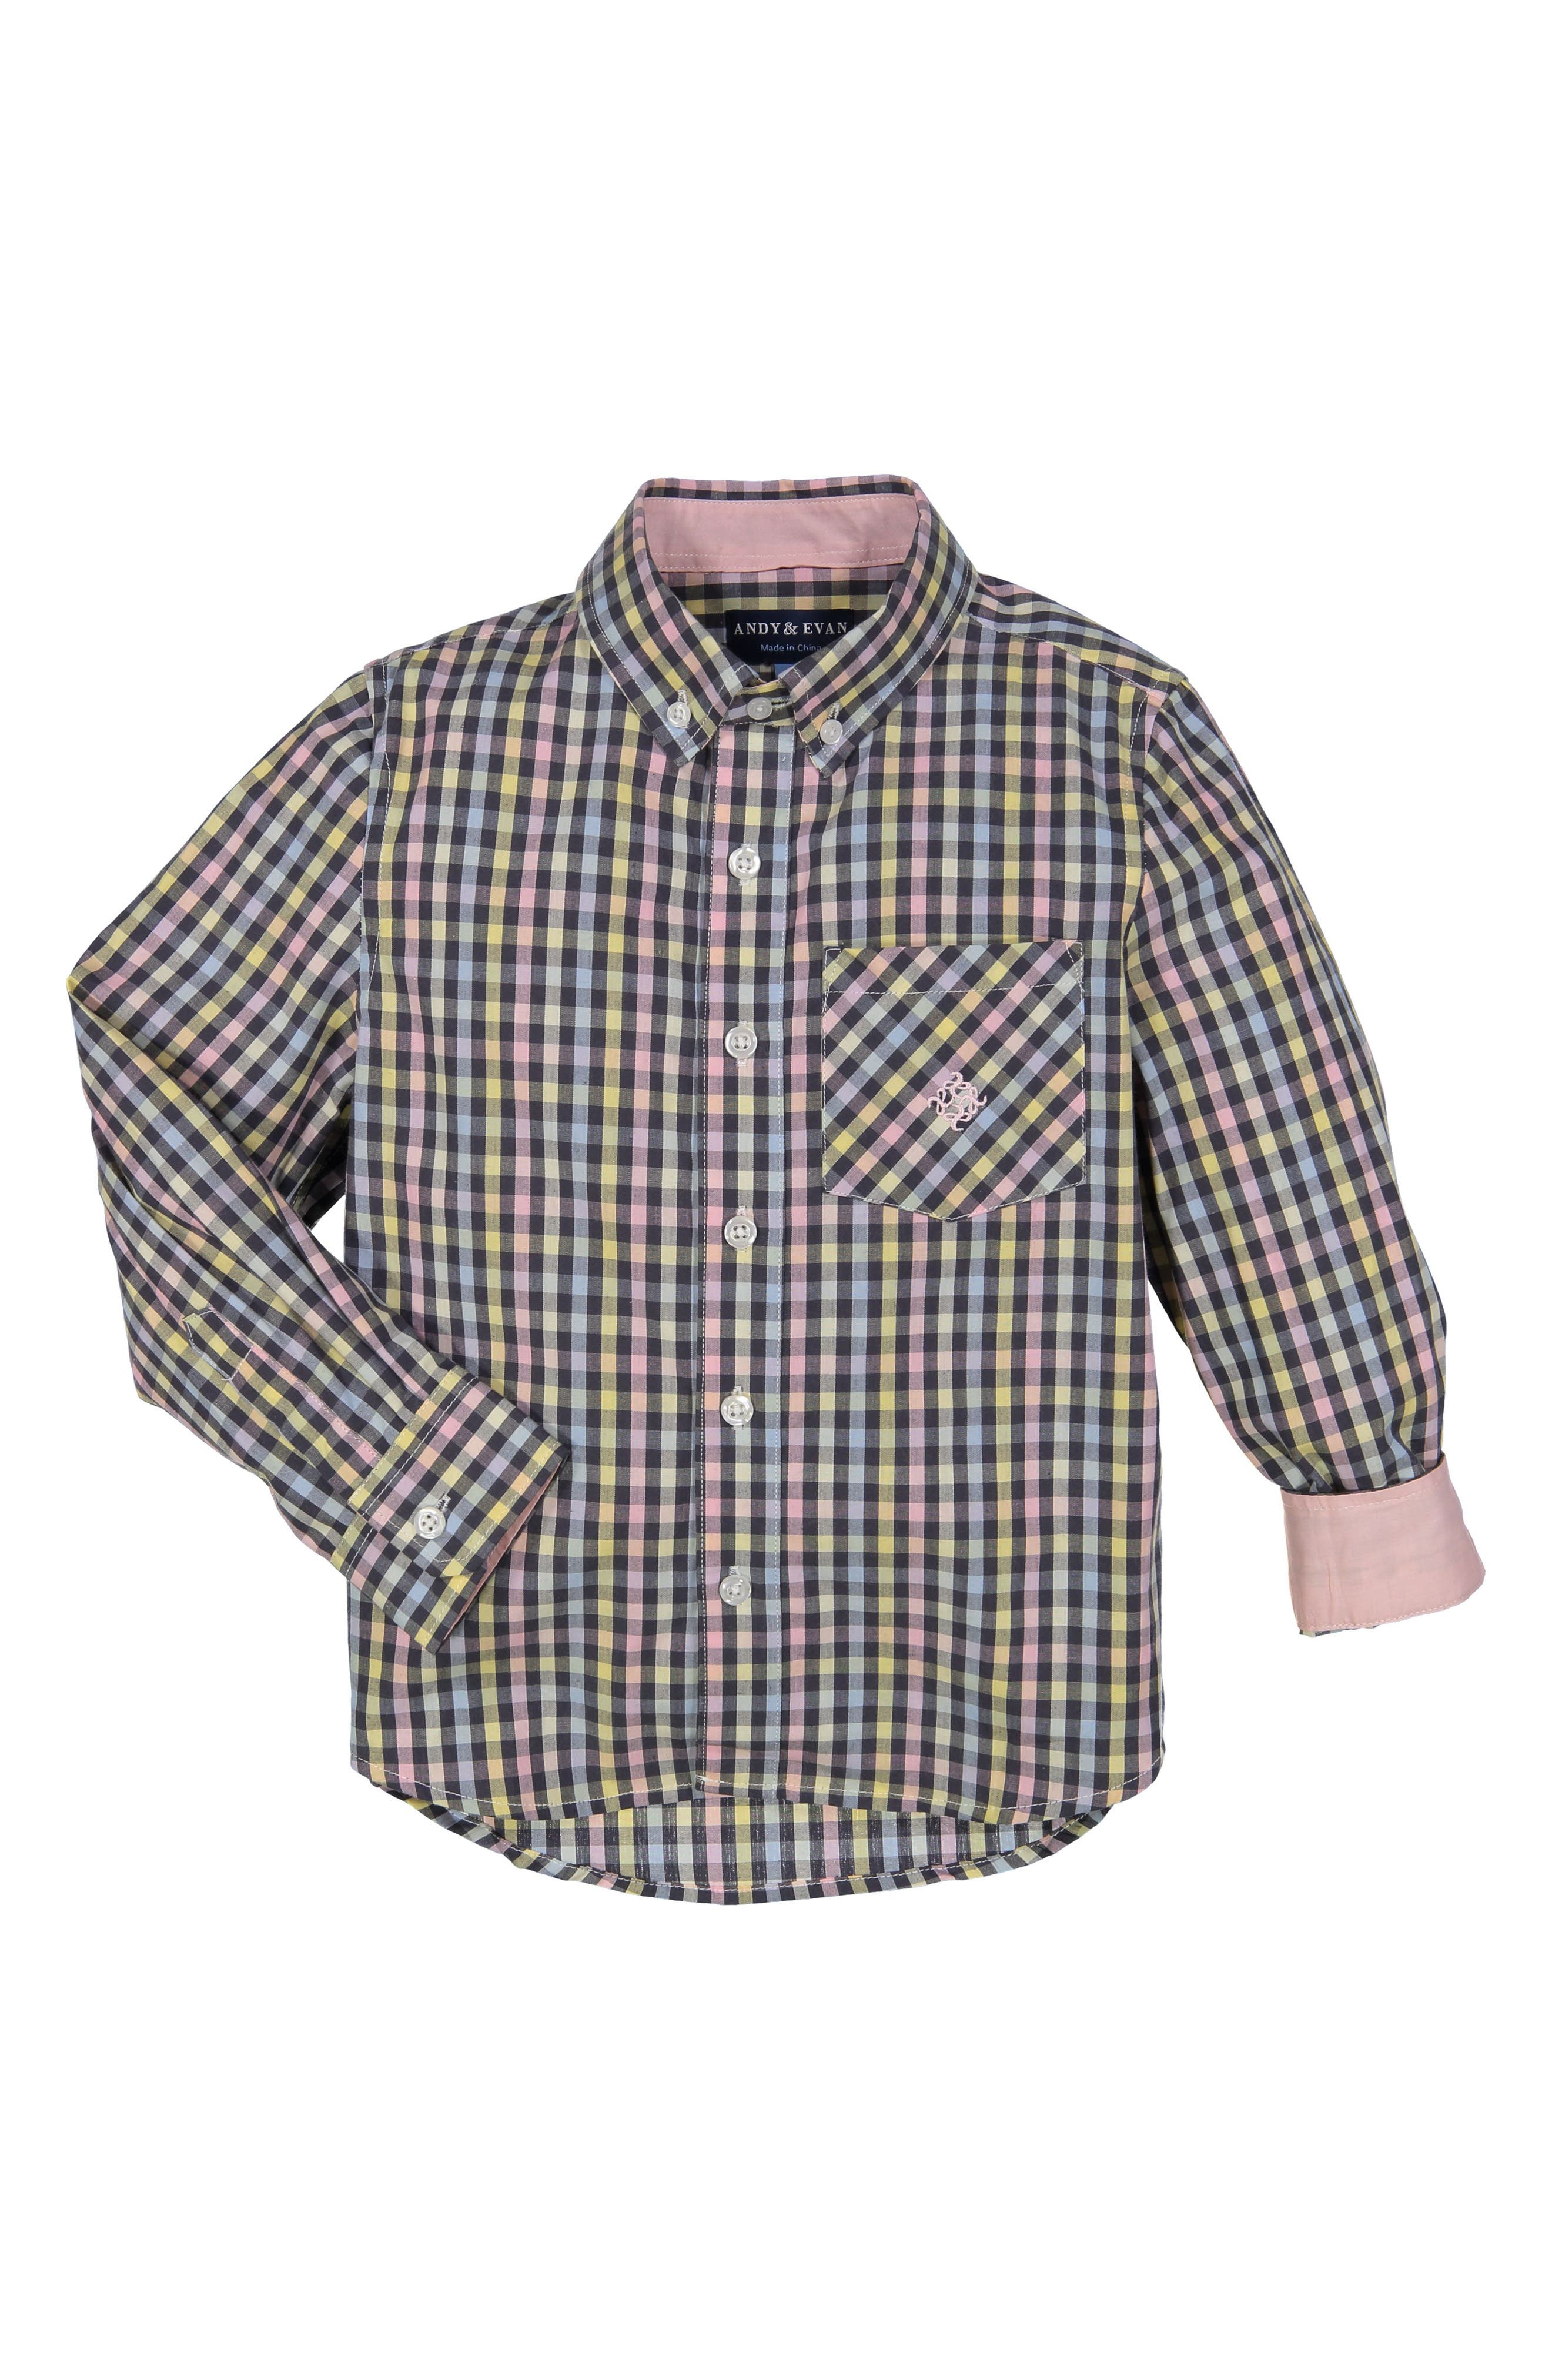 Gingham Check Woven Shirt,                         Main,                         color, Light/ Pastel Pink